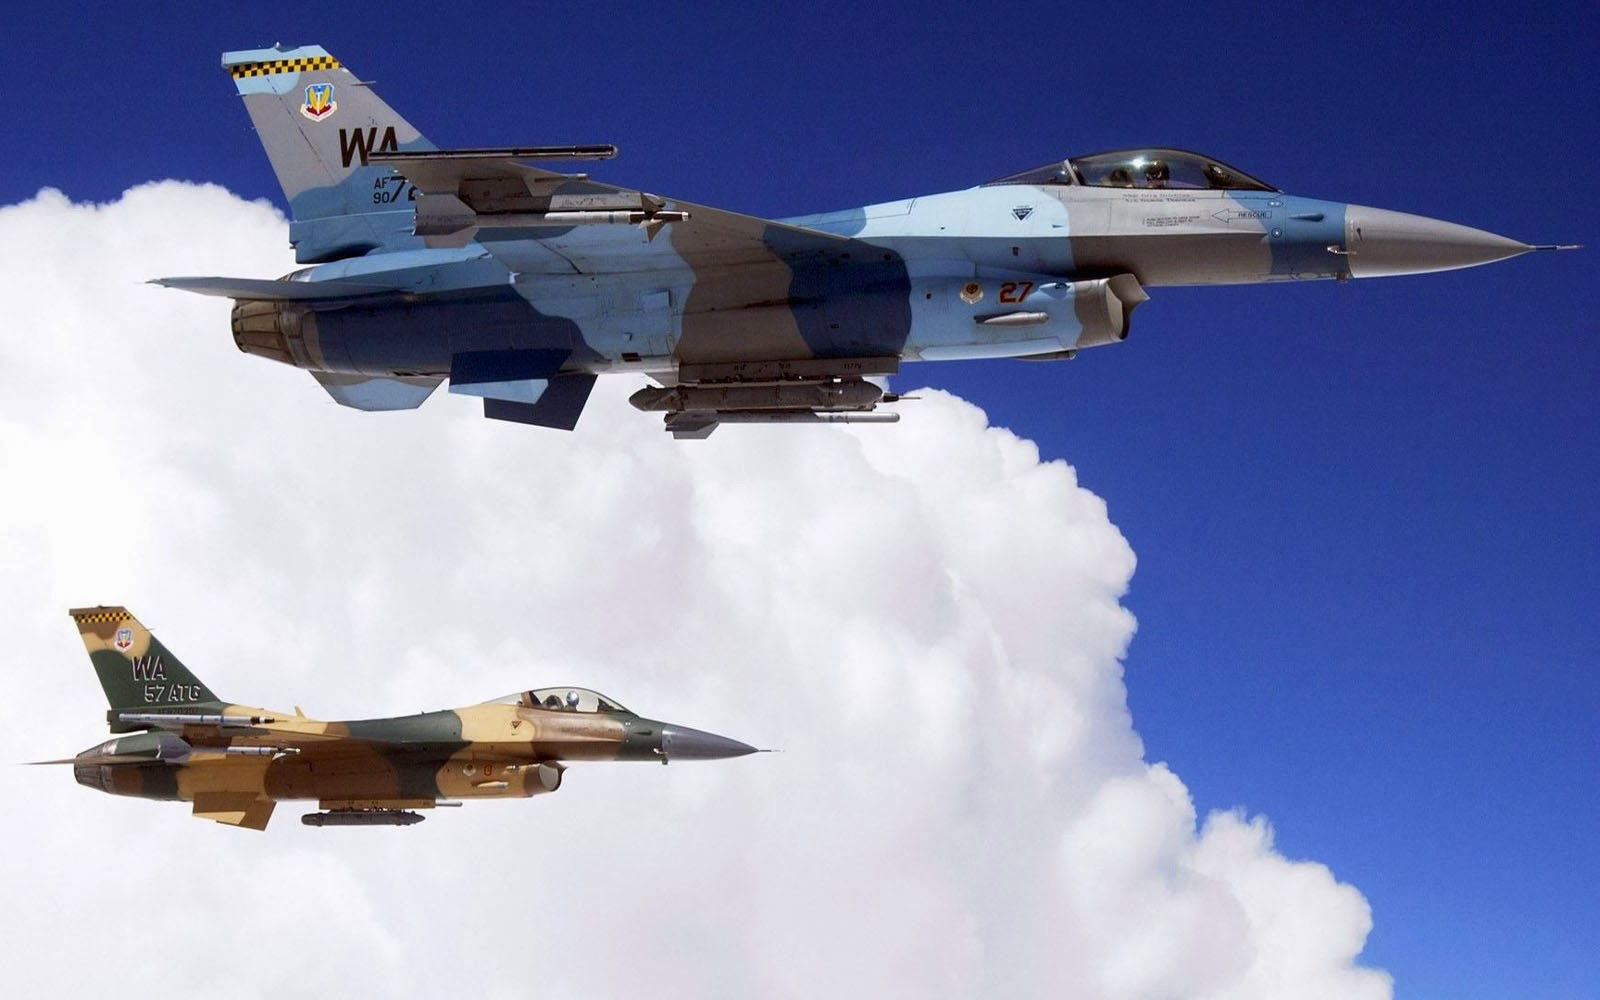 Wallpapers: General Dynamics F-16 Fighting Falcon Wallpapers